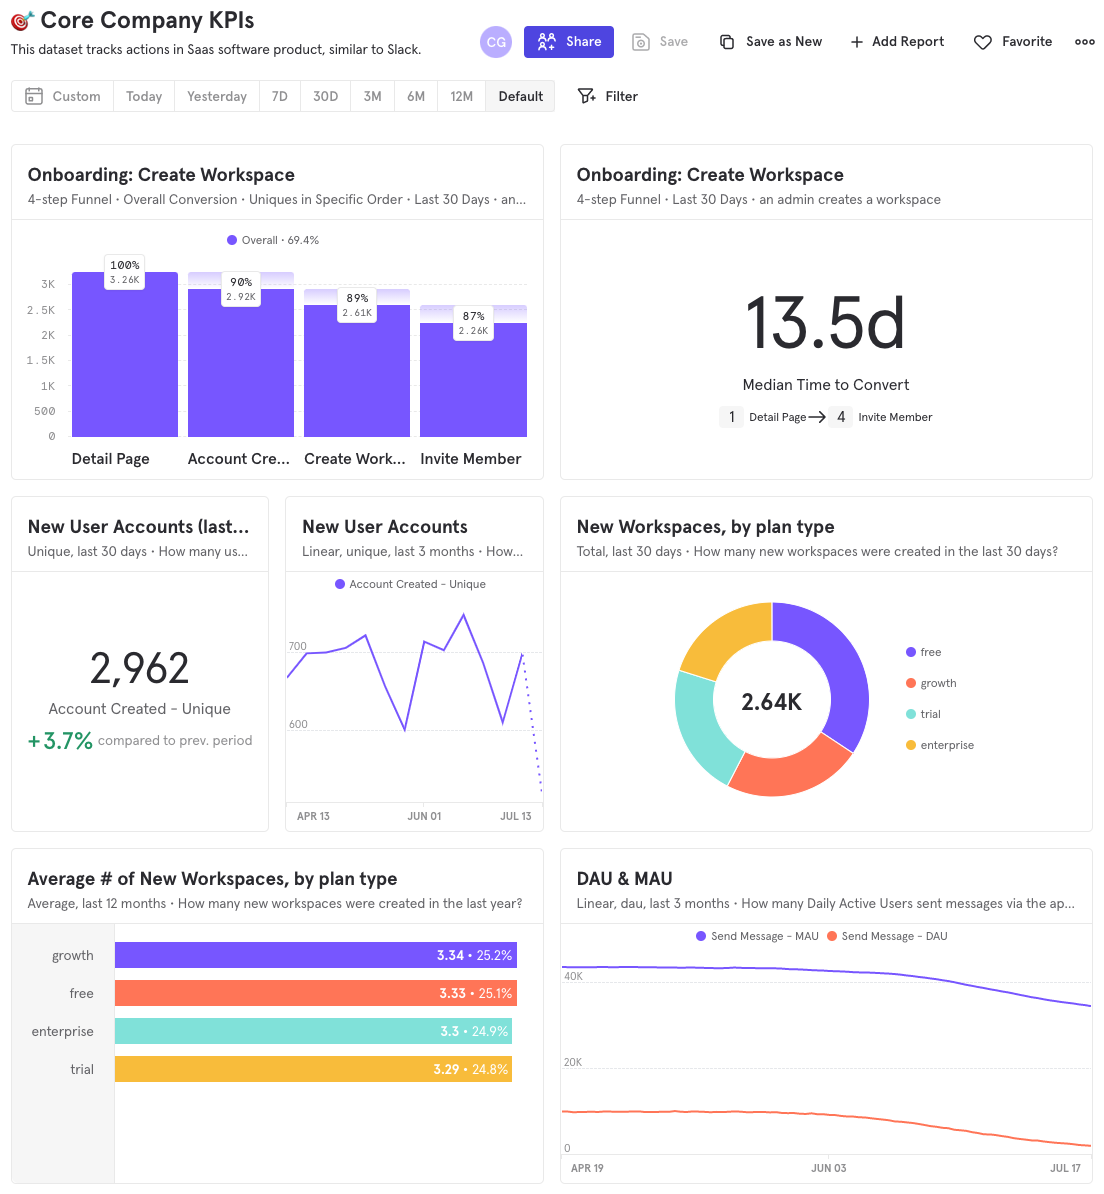 dashboards_header.png